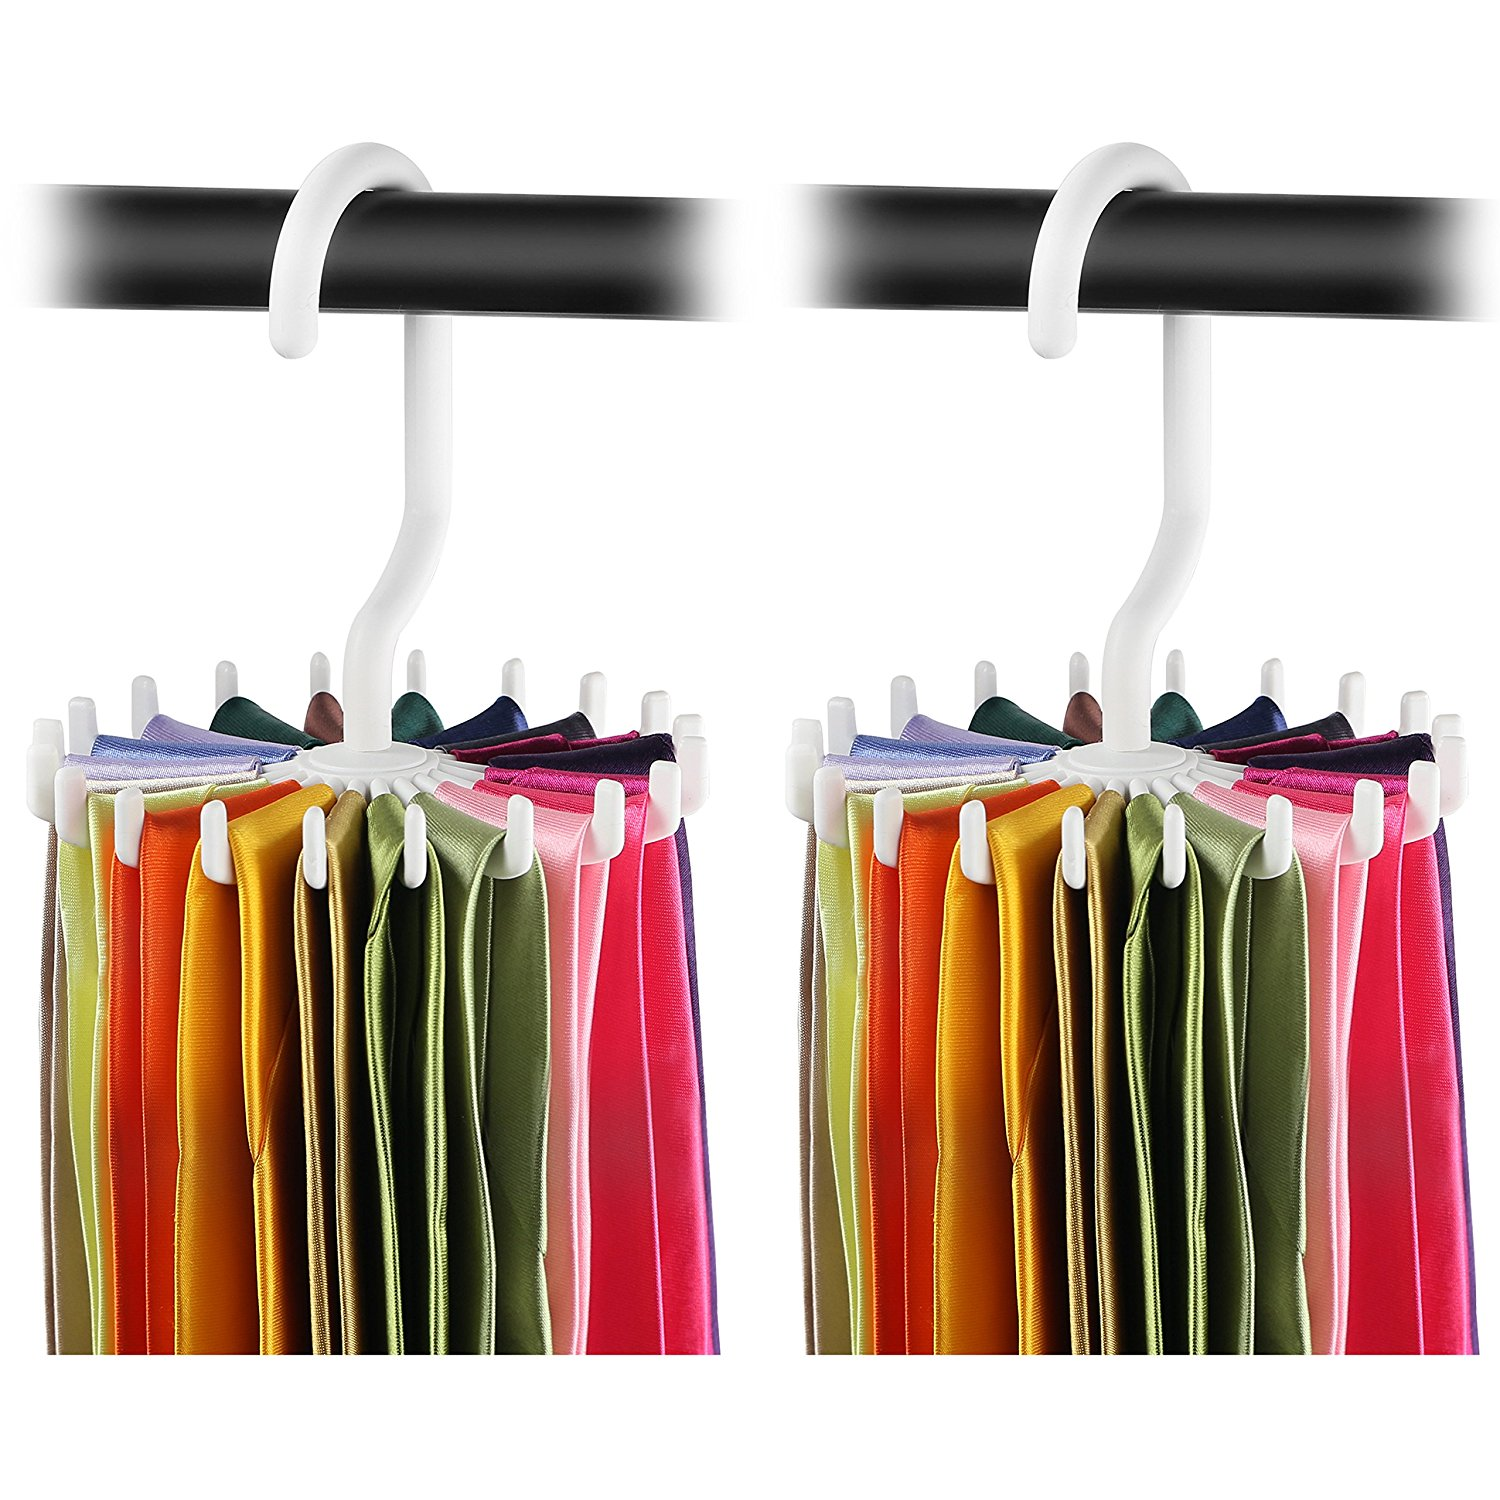 IPOW White Tie Rack Adjustable 360 Degree Rotation Twirl Sturdy Belt Hanger Non-slip Clips Durable Scarf Holder Organizer,Holds Securely up to 20 Ties,2 Pack,Large Size 5.3""